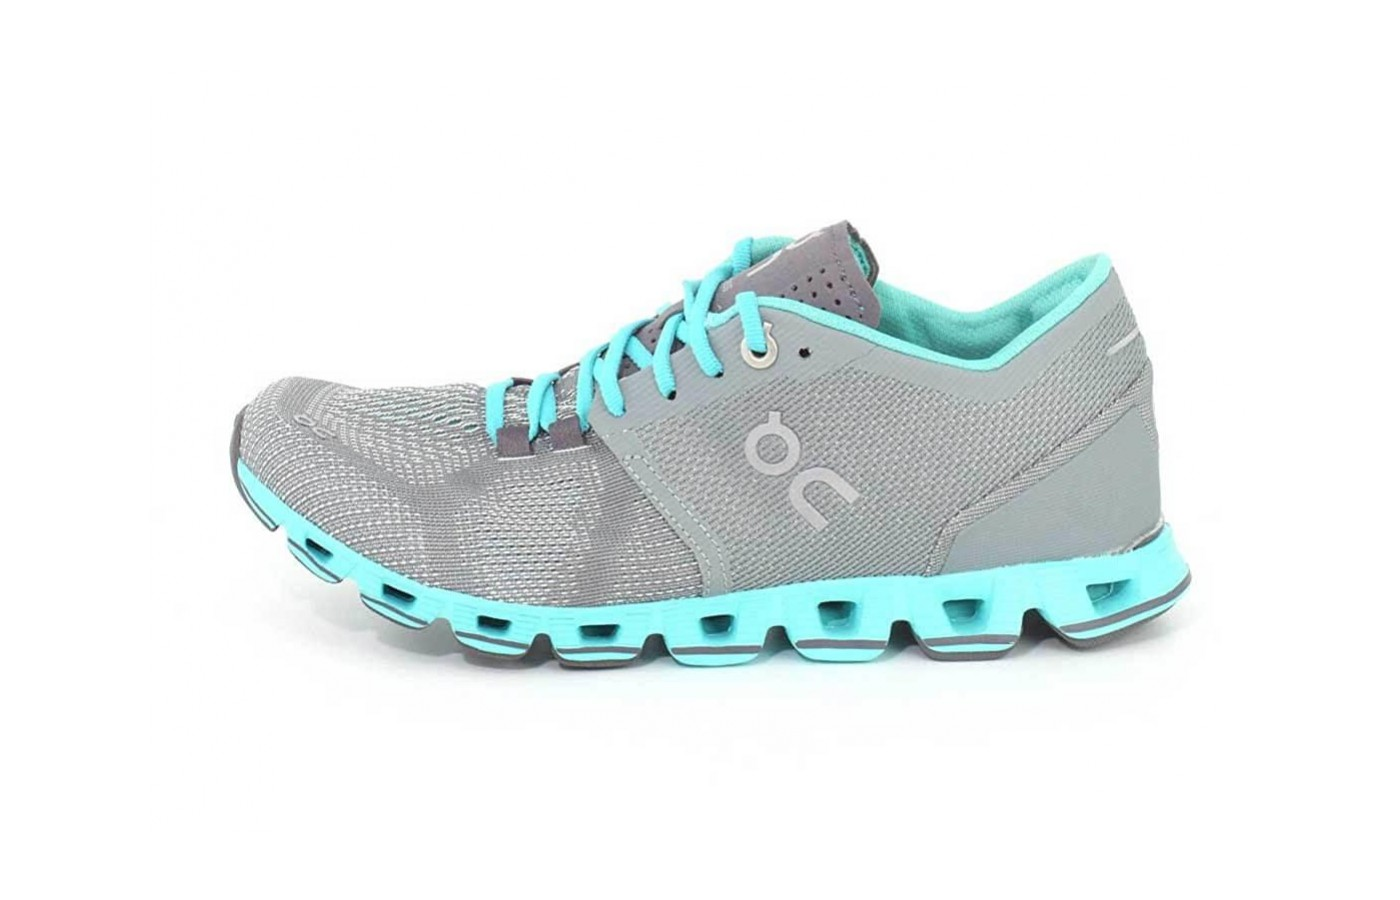 The On Cloud X features a CloudTec outsole